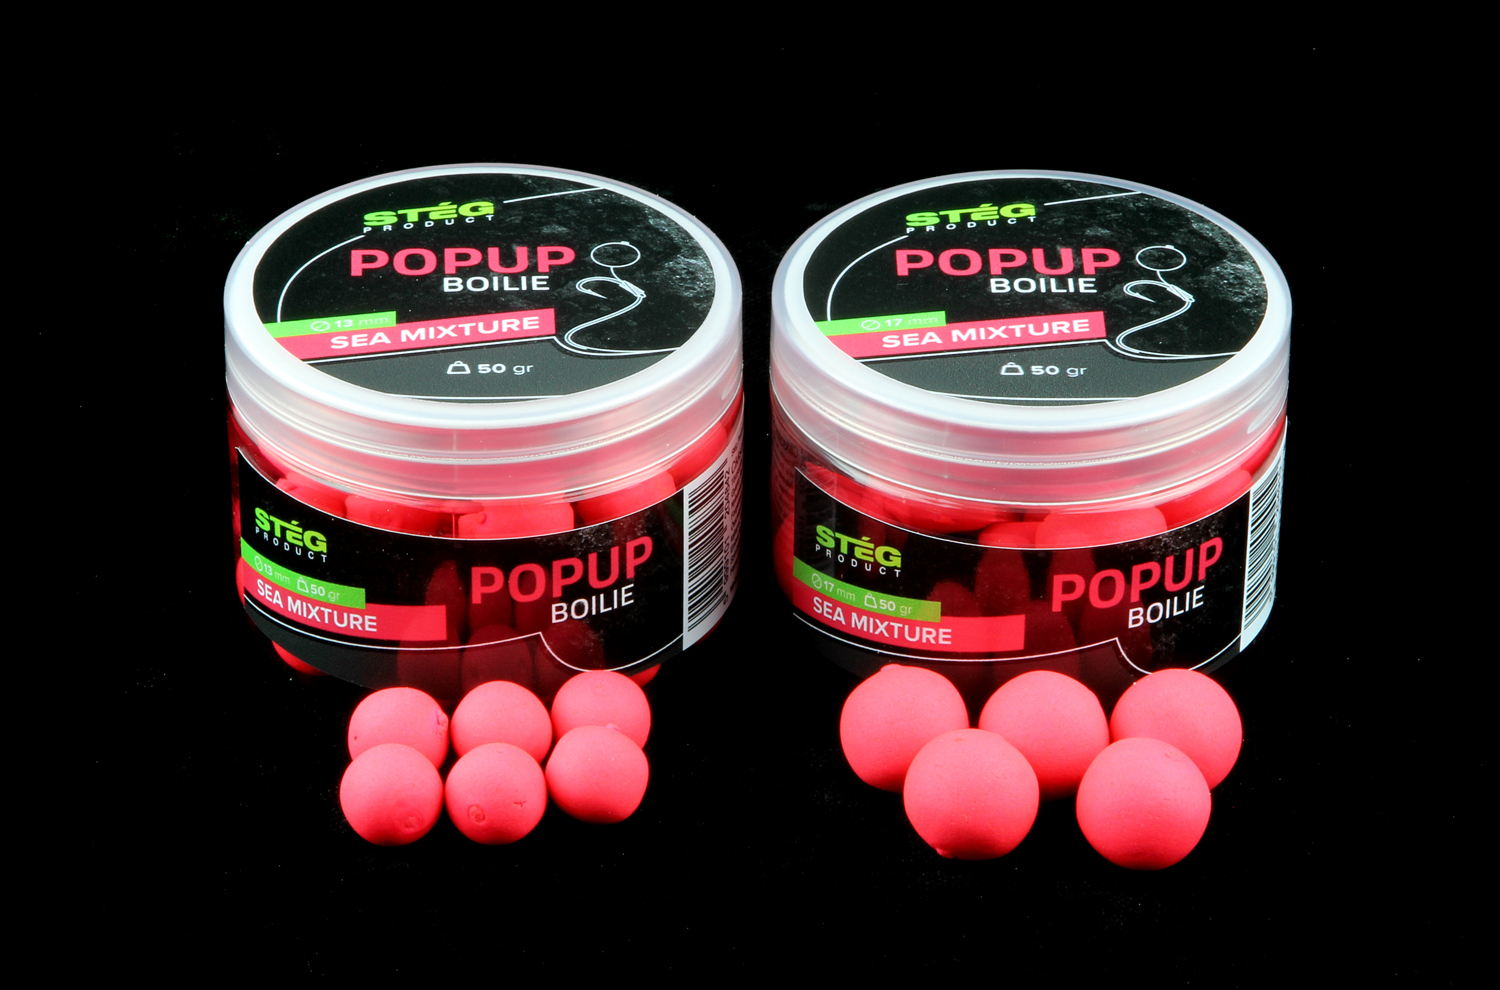 STEG FLUO POP UP BOILIE 13MM - SEA MIXTURE